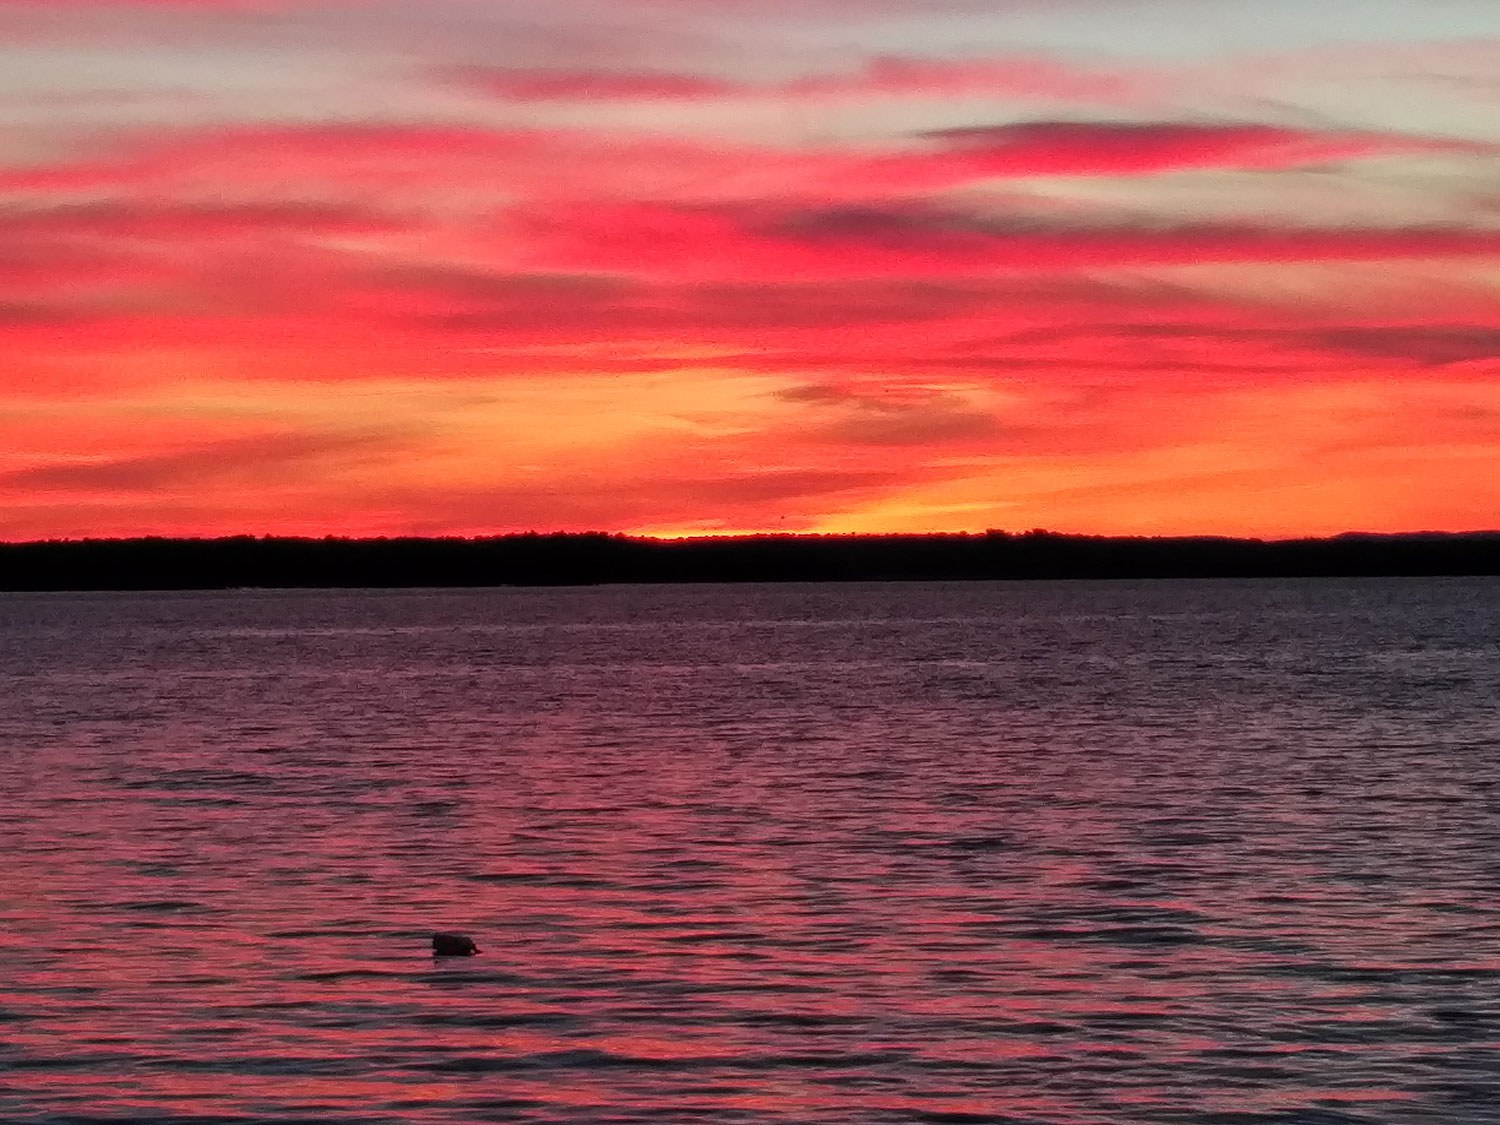 Sunset over Manitoulin Island